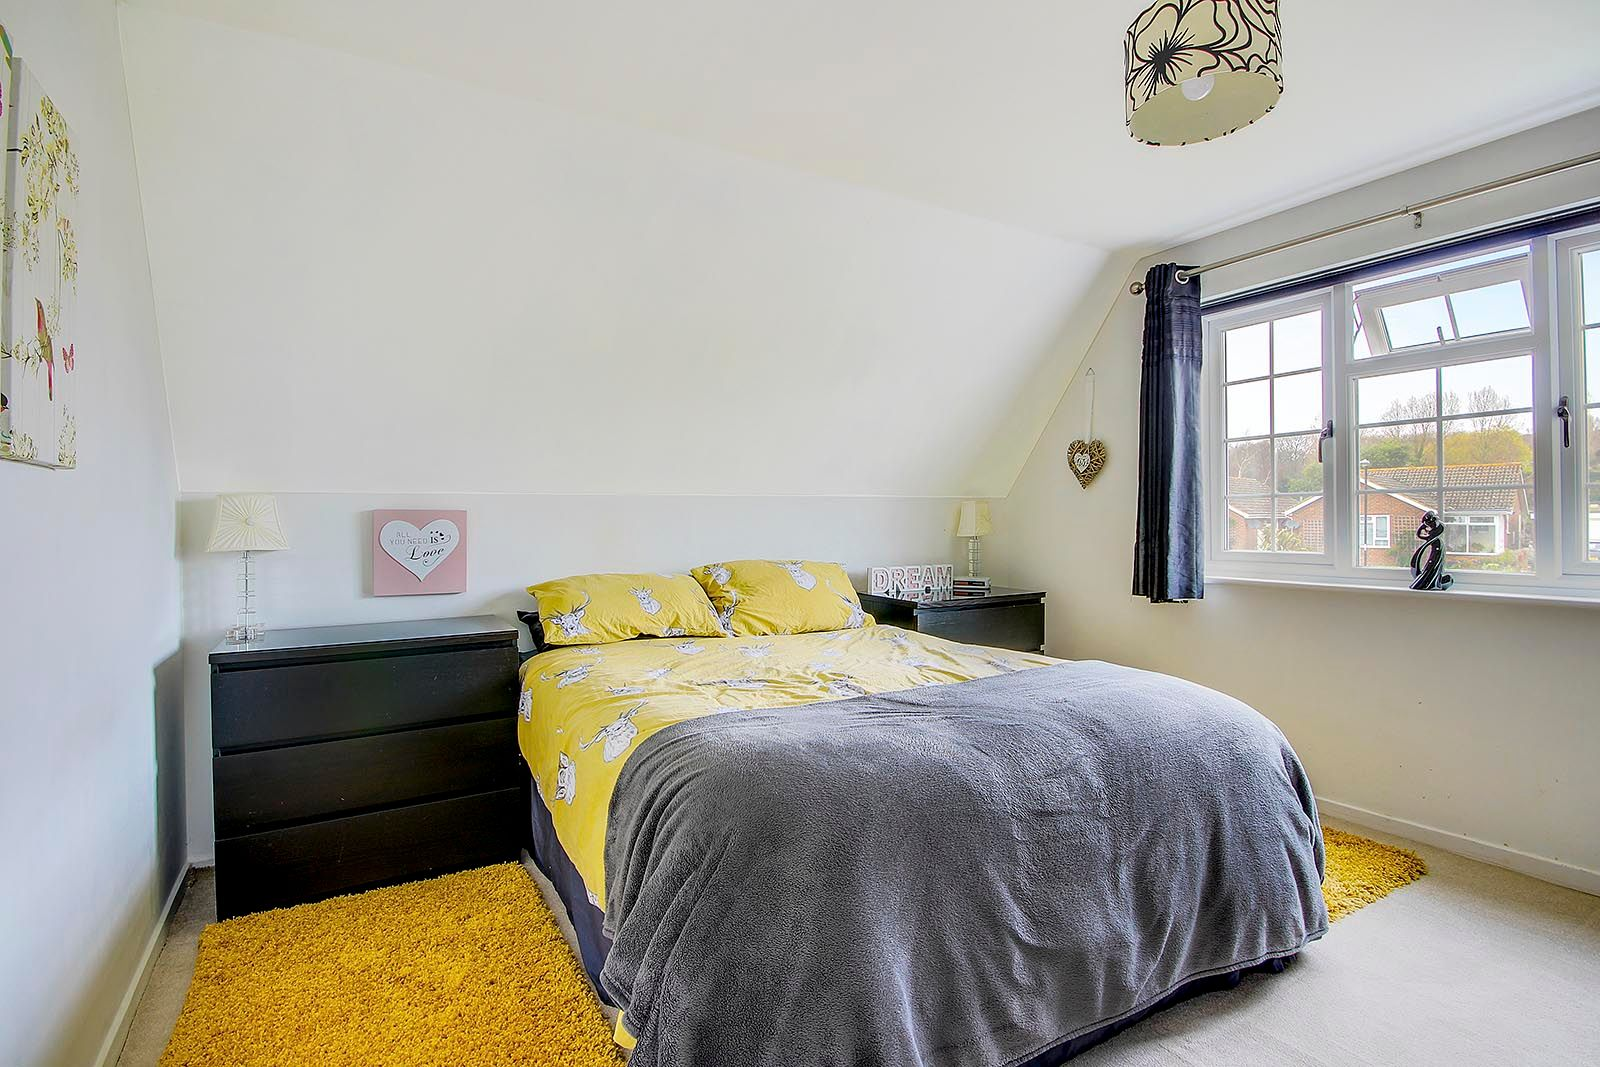 3 bed house for sale in Woodlands Close (COMP AUG 19) 16